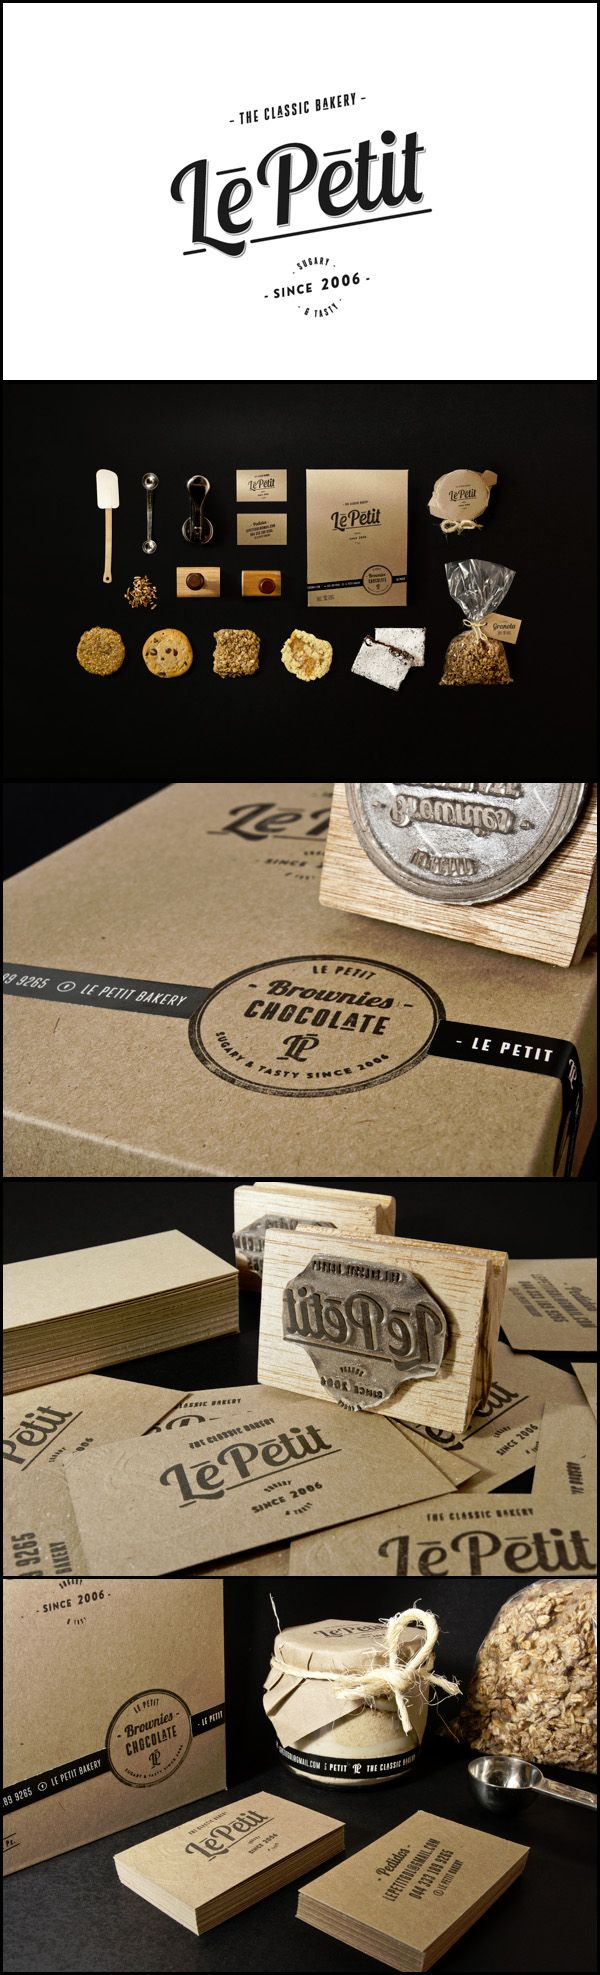 Le Petit Bakery  Branding, Packaging by Manuel Navarro Orozco, via Behance